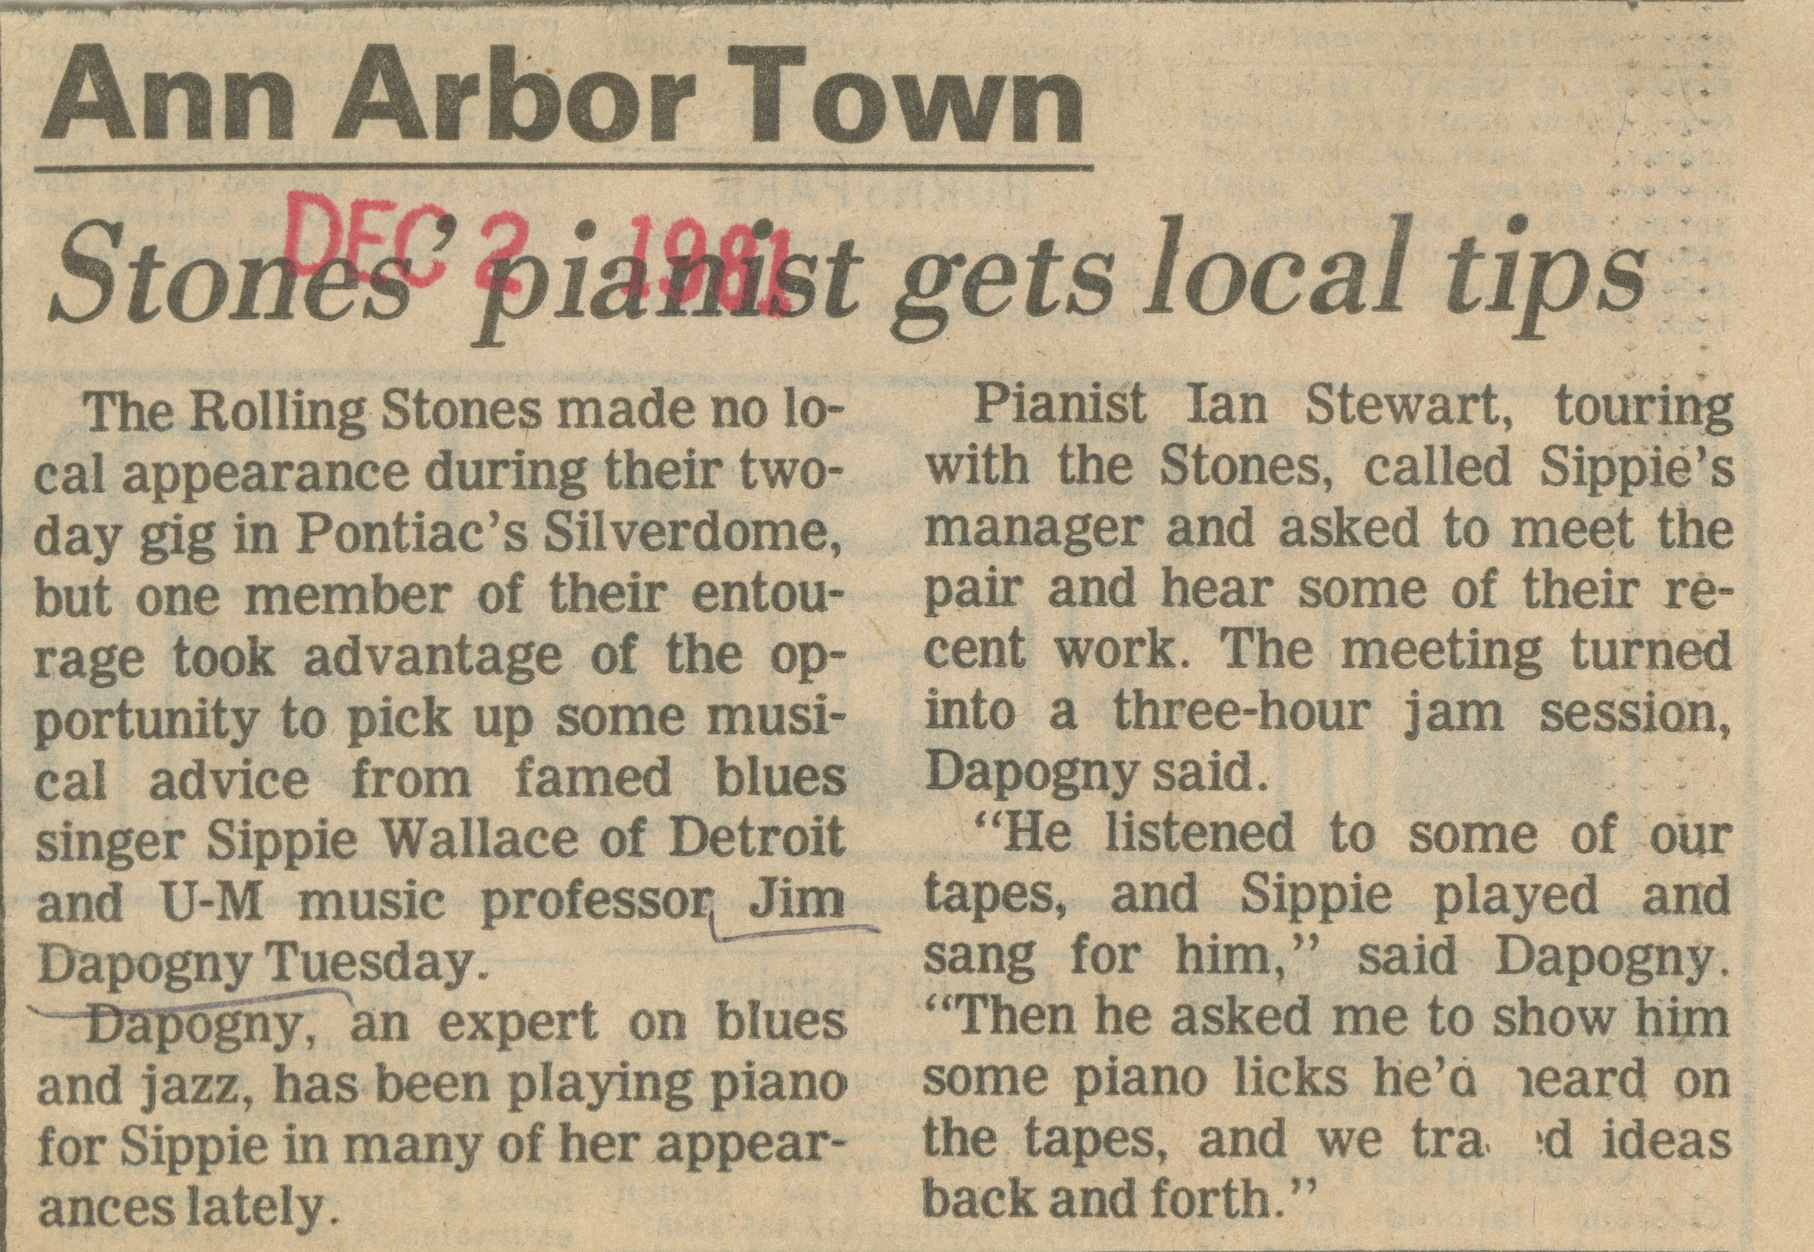 Stones' Pianist Gets Local Tips image